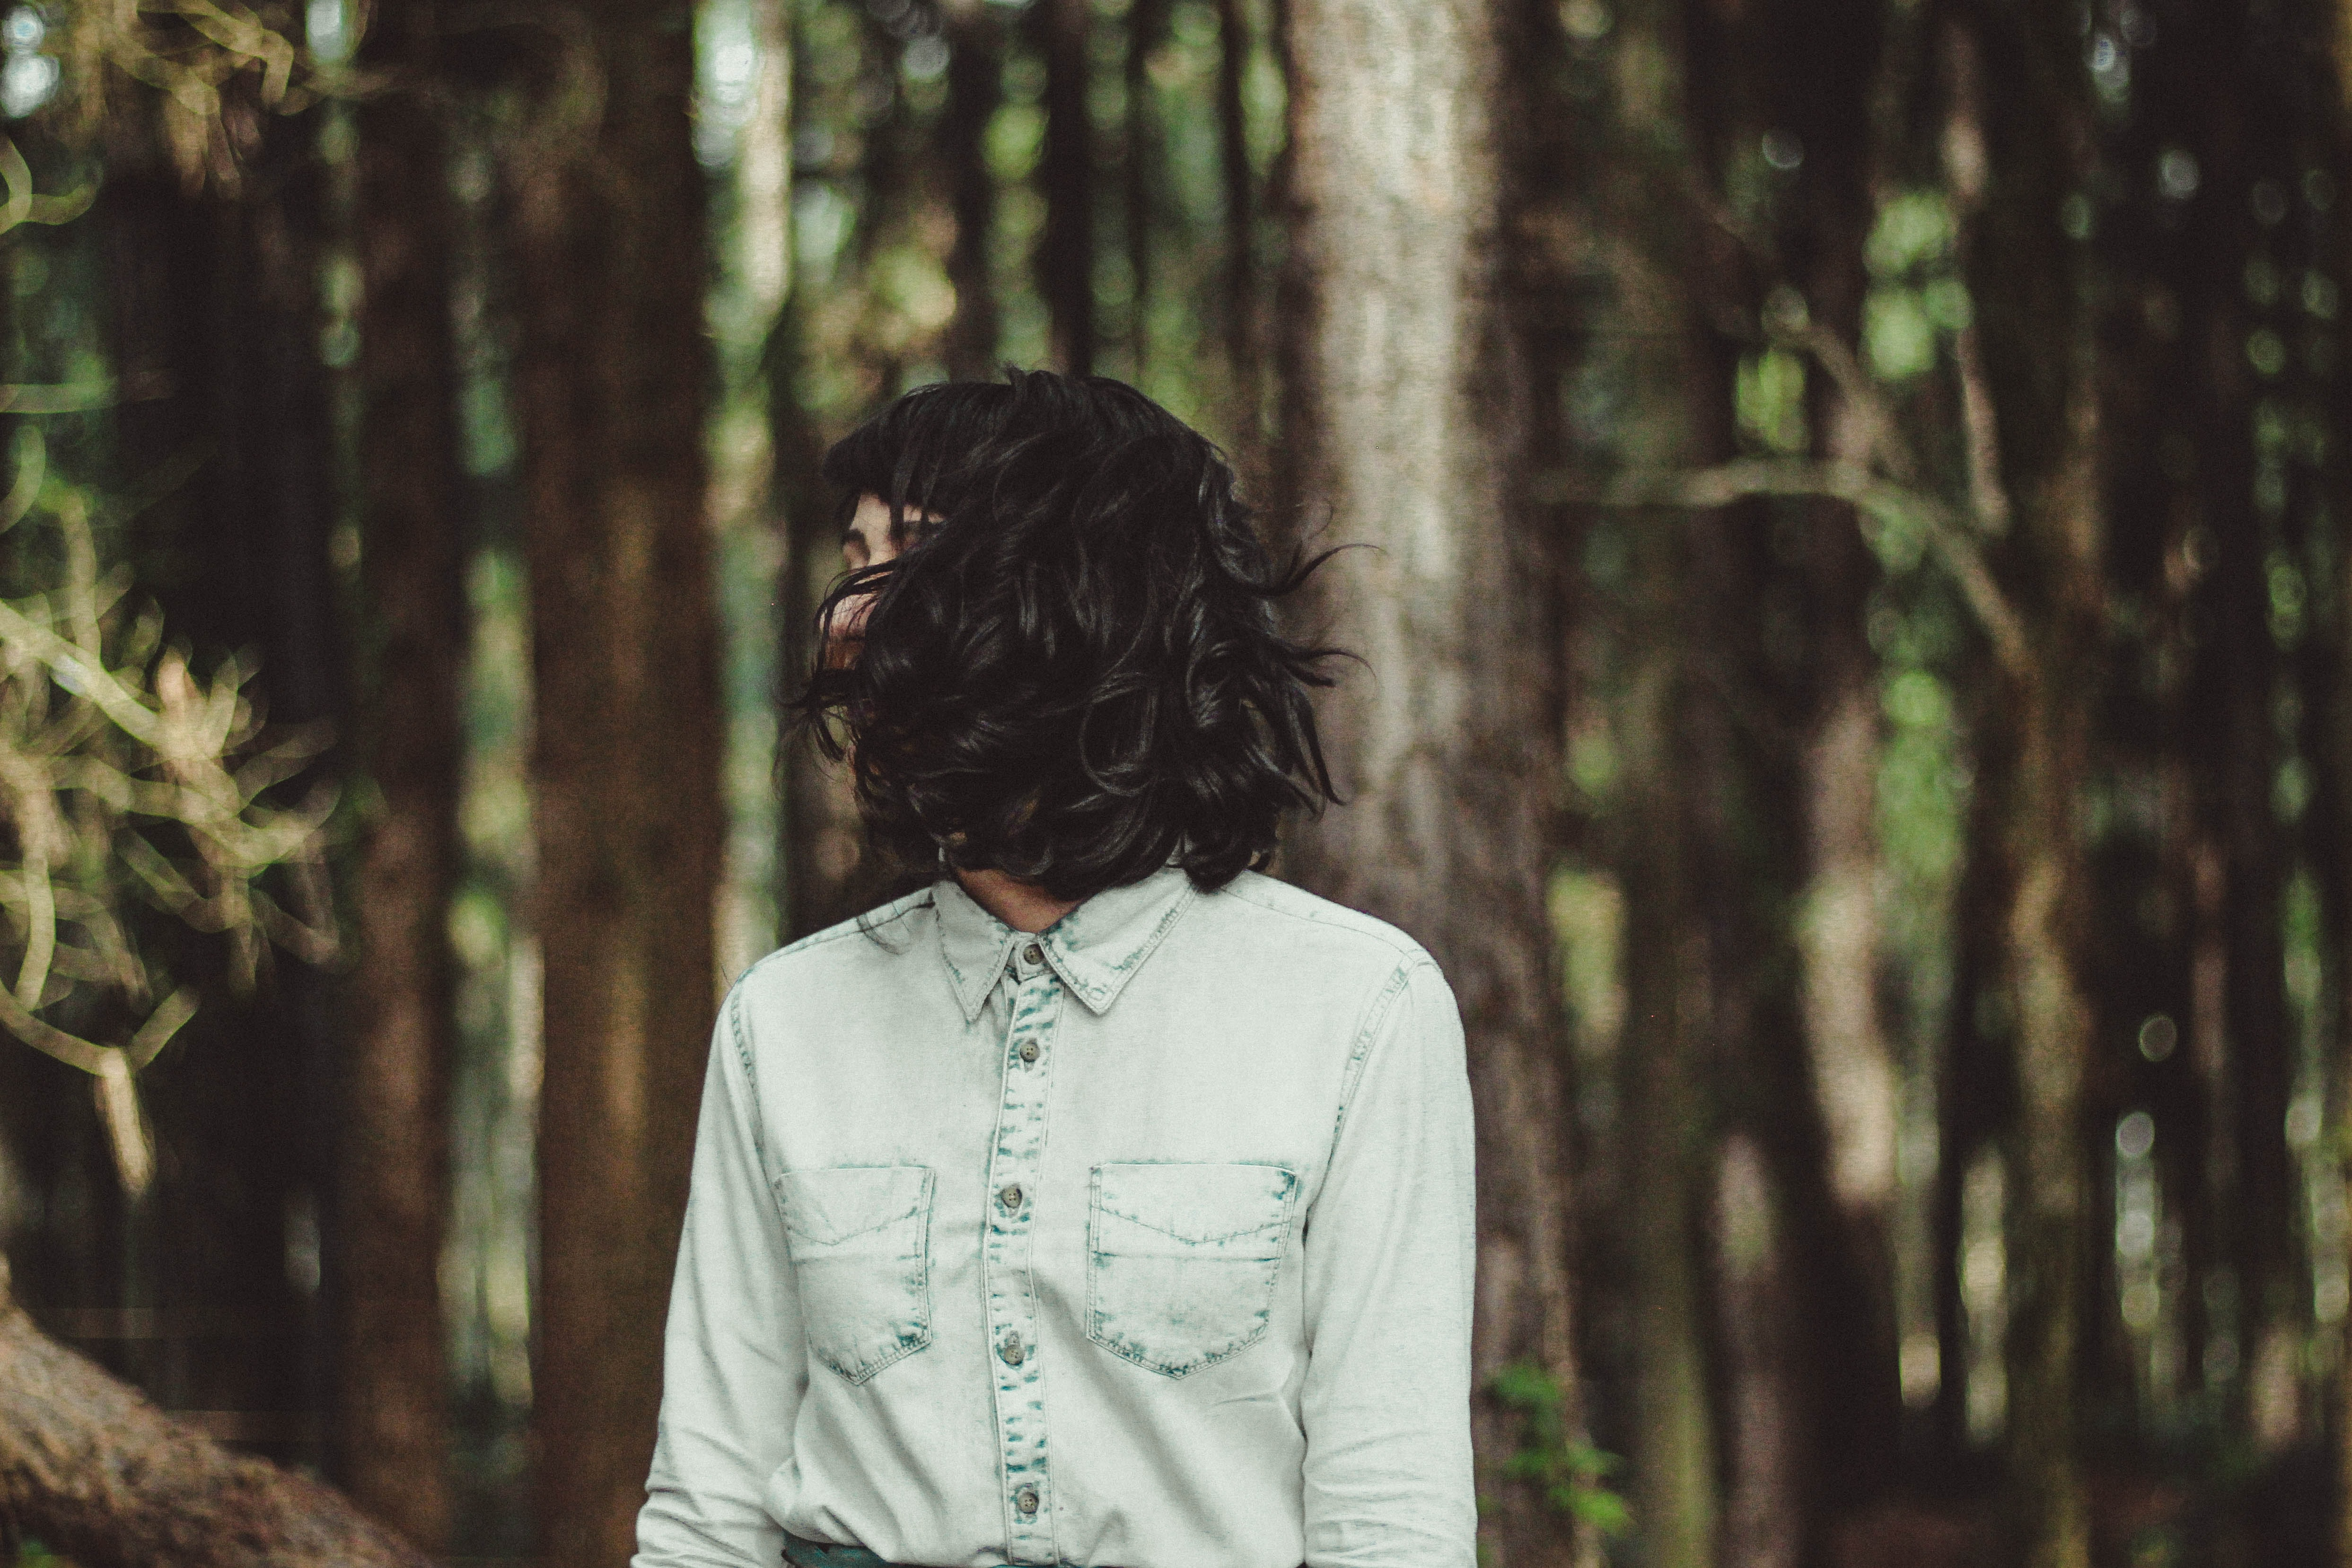 A brunette woman in a denim shirt in a forest